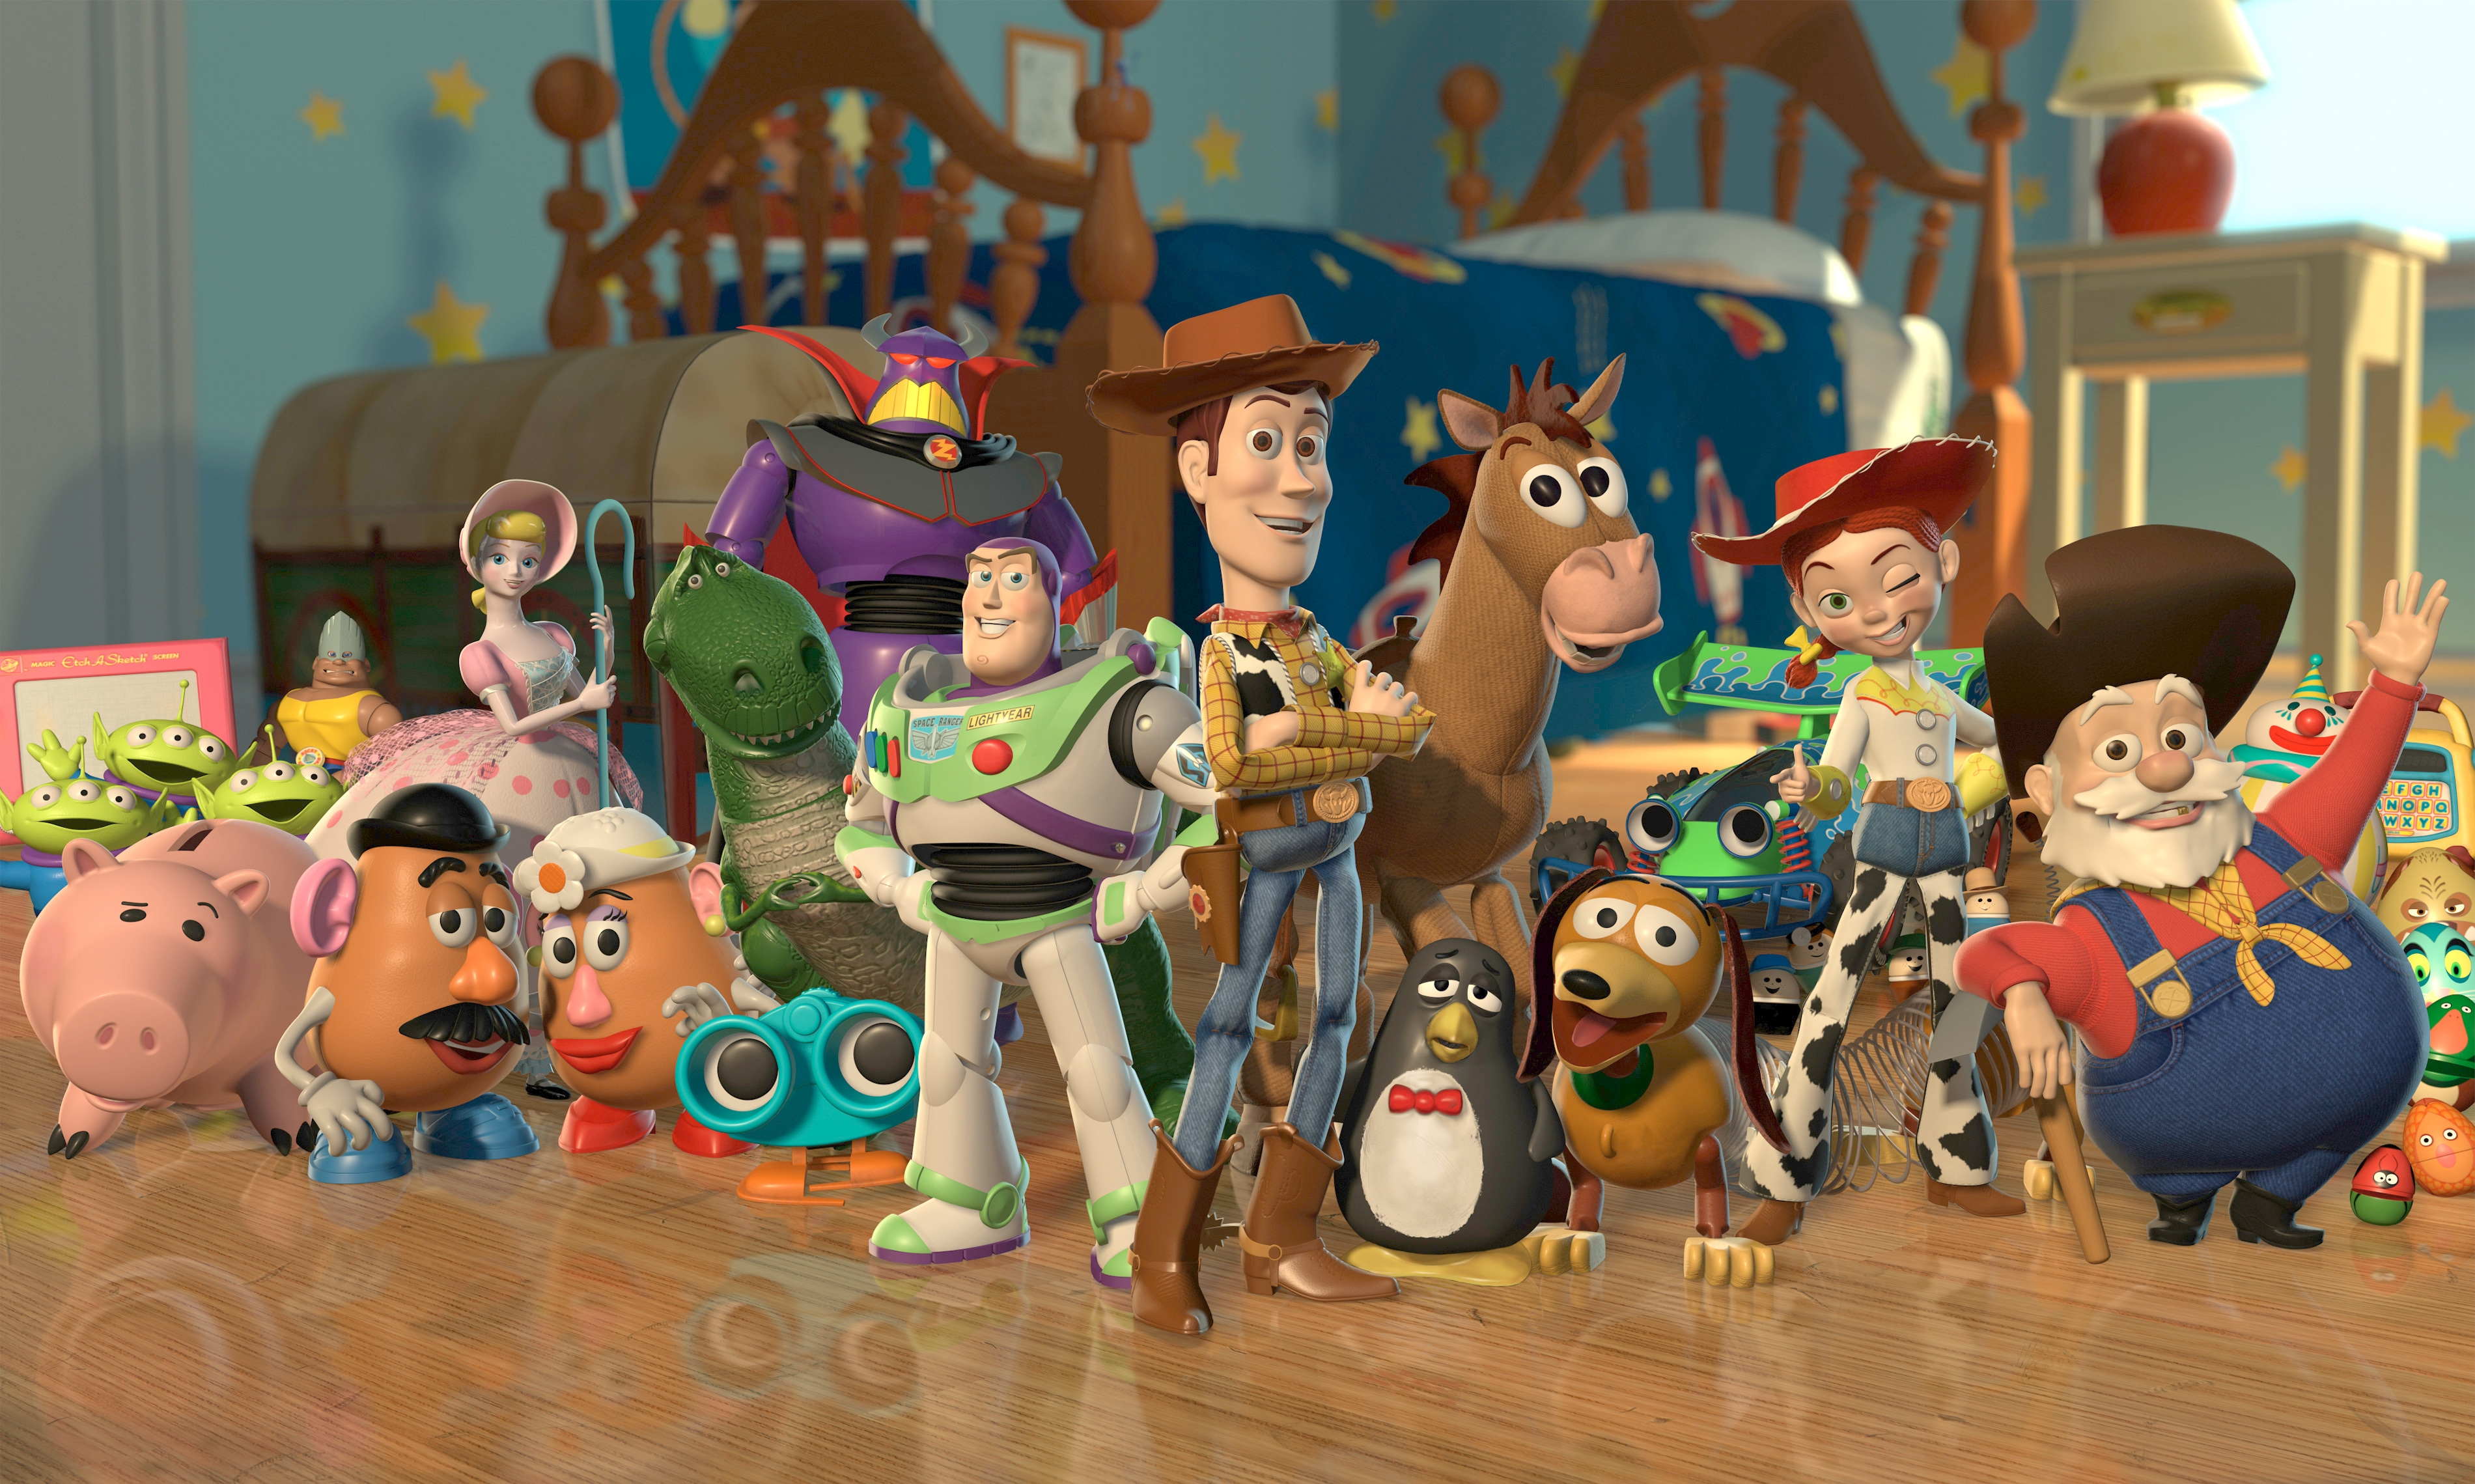 Toy Story Is Real At Santa Claus's North Pole City